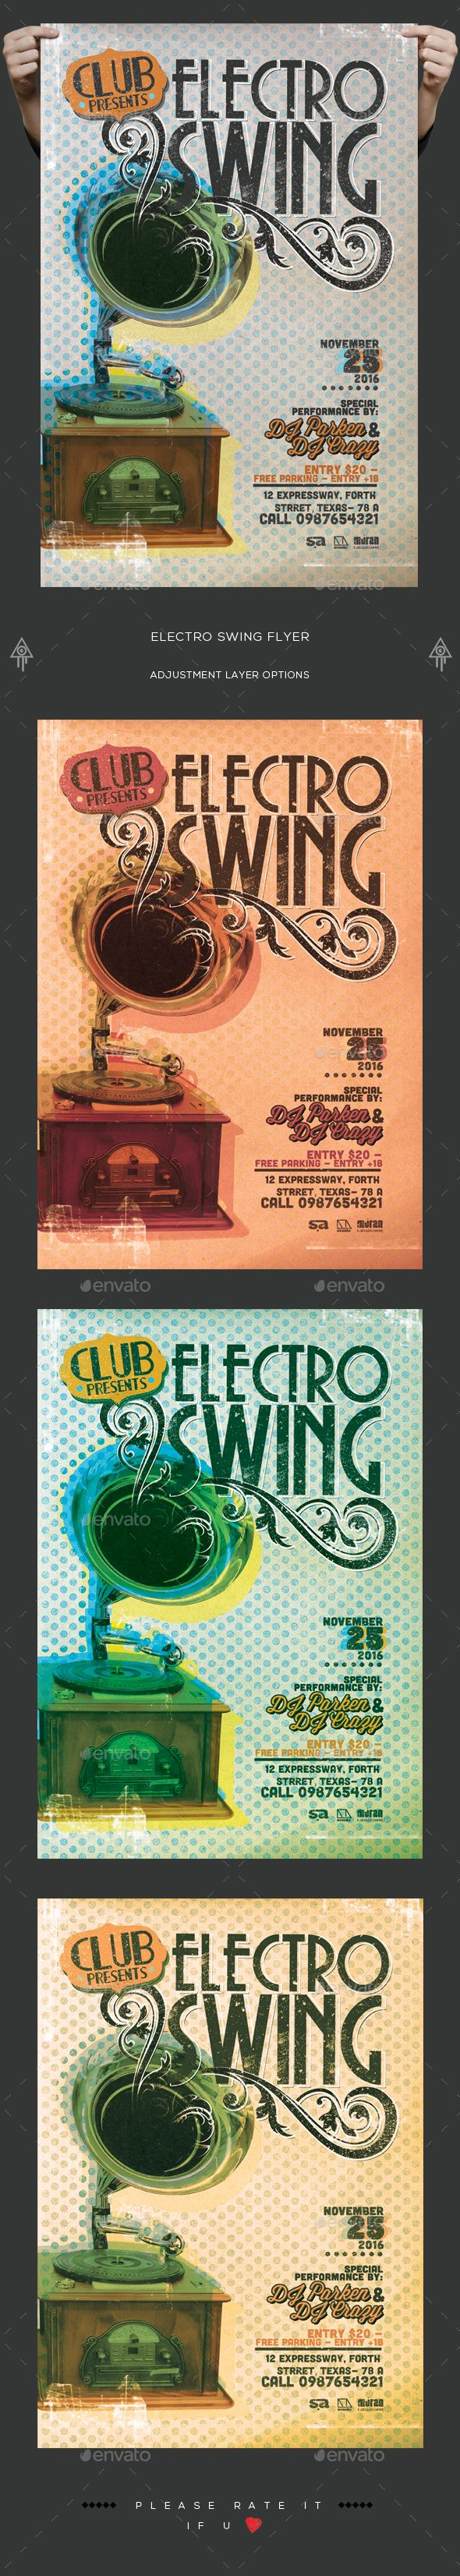 Electro Swing Flyer  — PSD Template #flyer #event • Download ➝ https://graphicriver.net/item/electro-swing-flyer/18365430?ref=pxcr